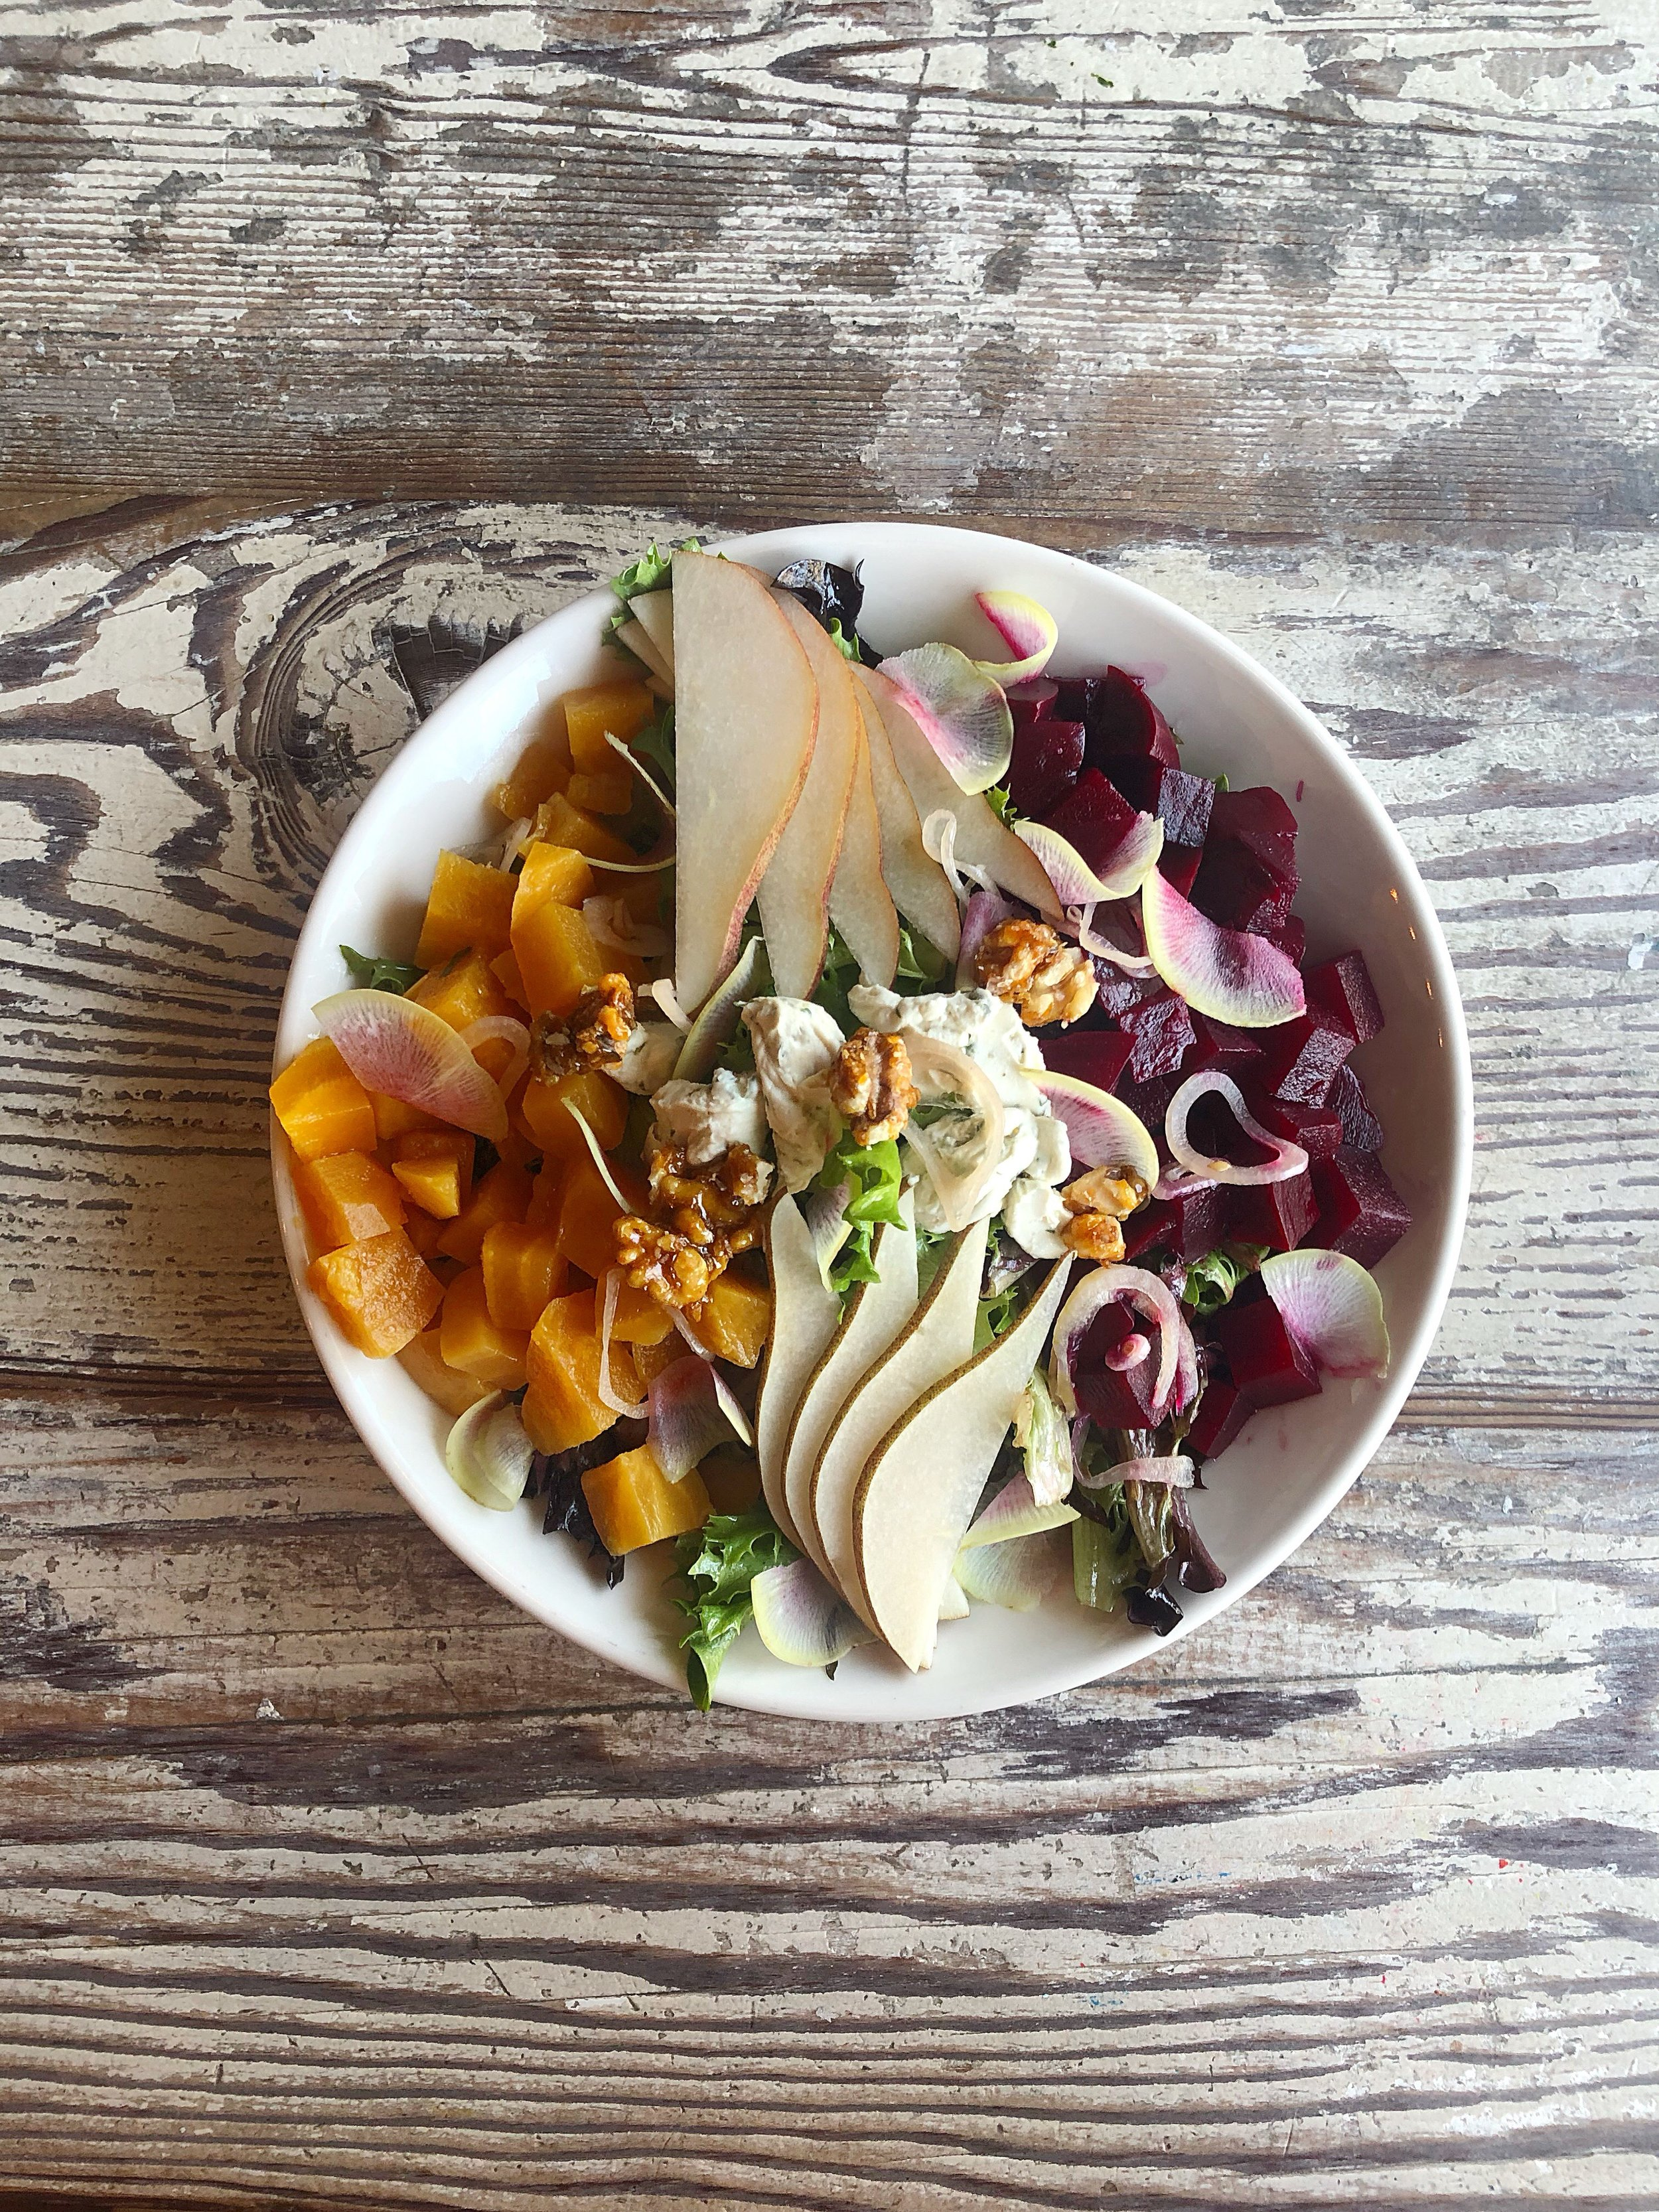 Vegetable-Beet-Salad-Flatlay-View.JPG